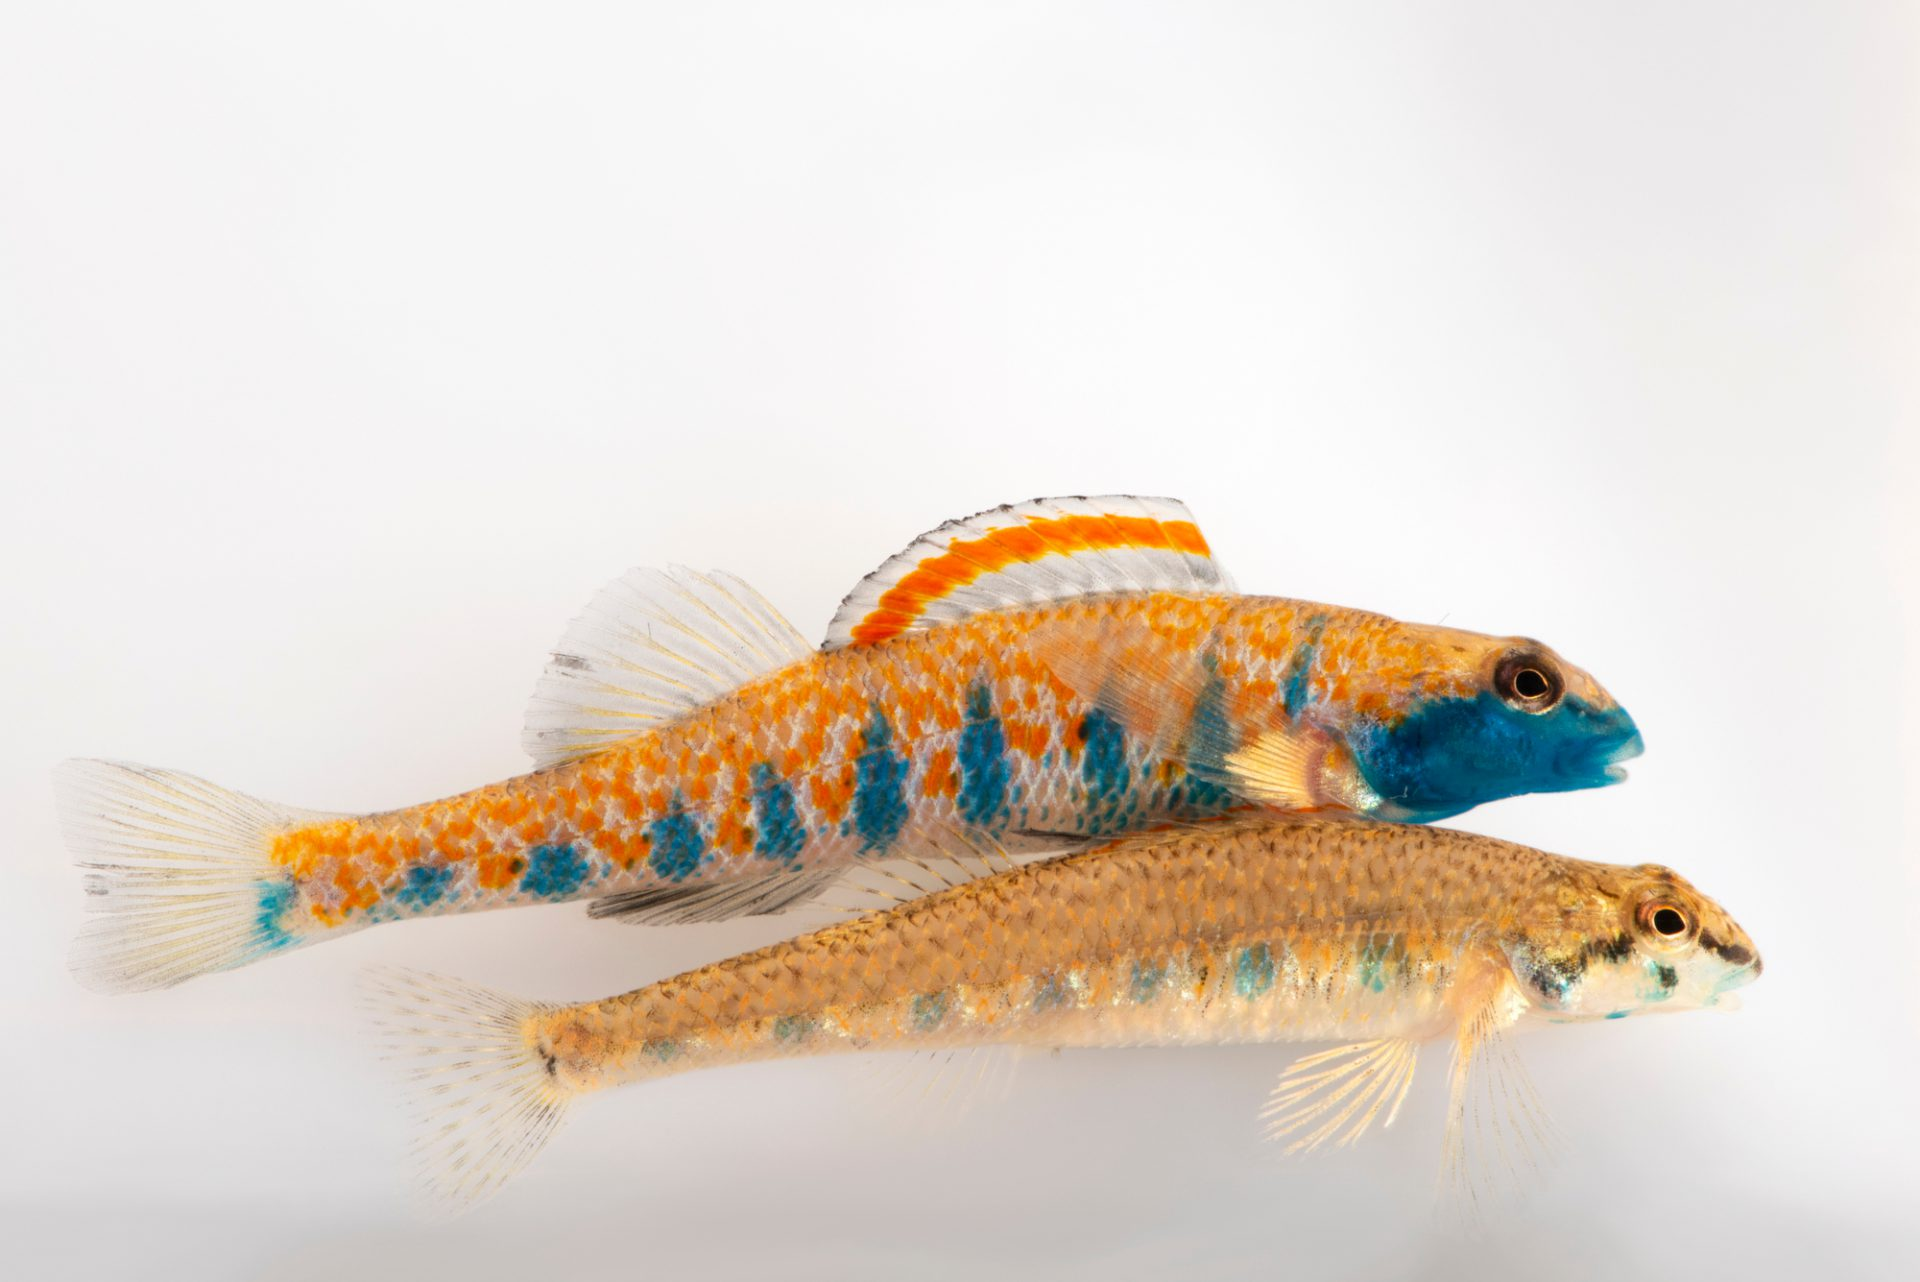 Photo: Endangered bluemask darters (Etheostoma akatulo) at Conservation Fisheries.